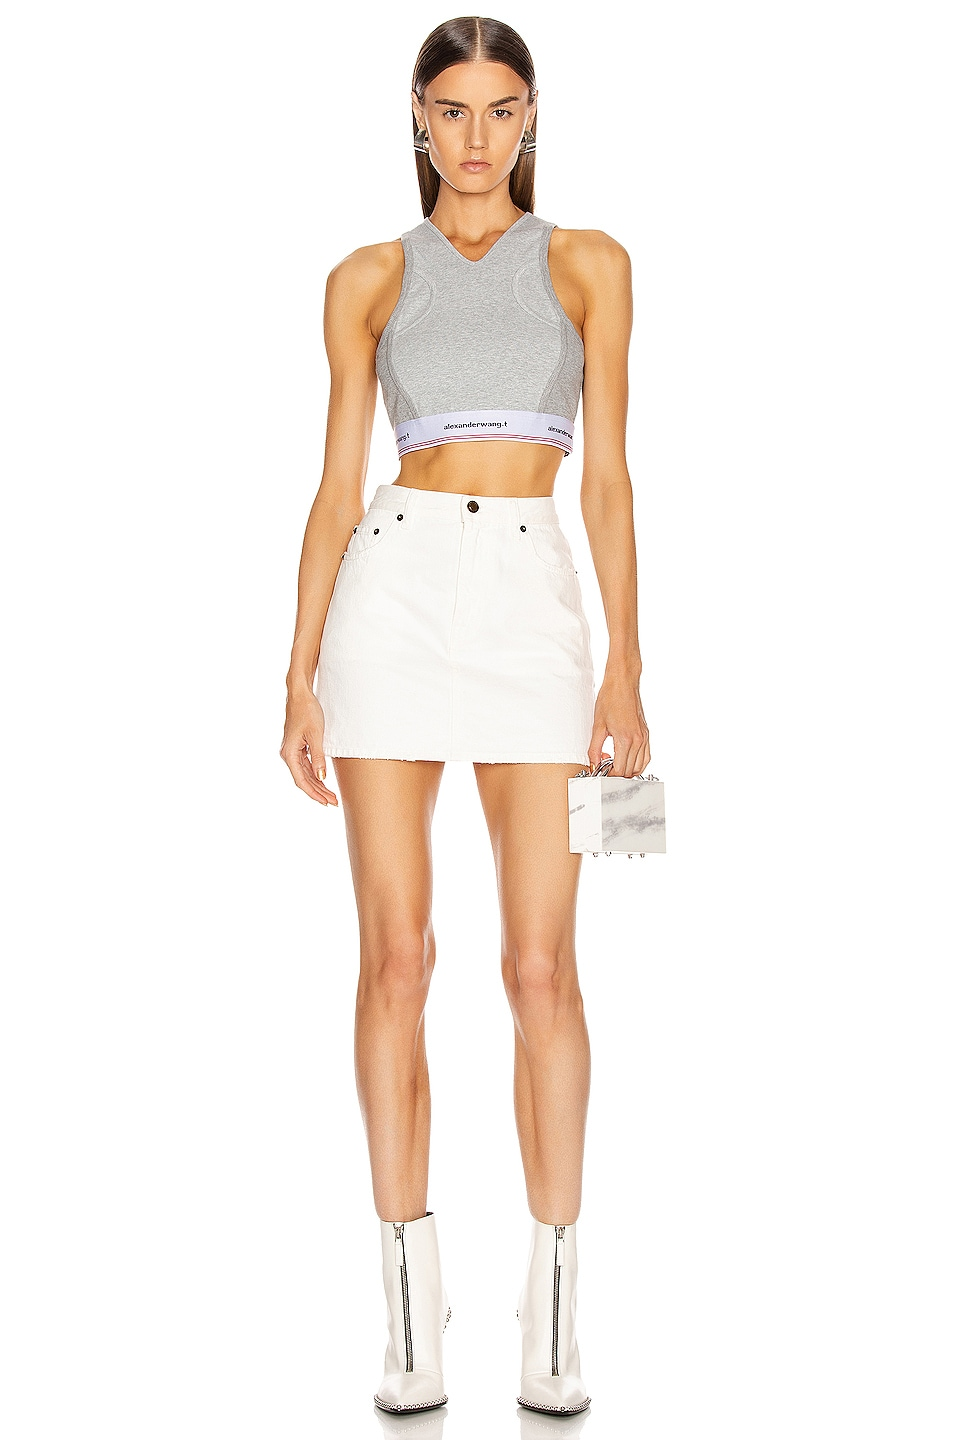 Image 4 of T by Alexander Wang Wash and Go Compact Rib Top in Heather Grey